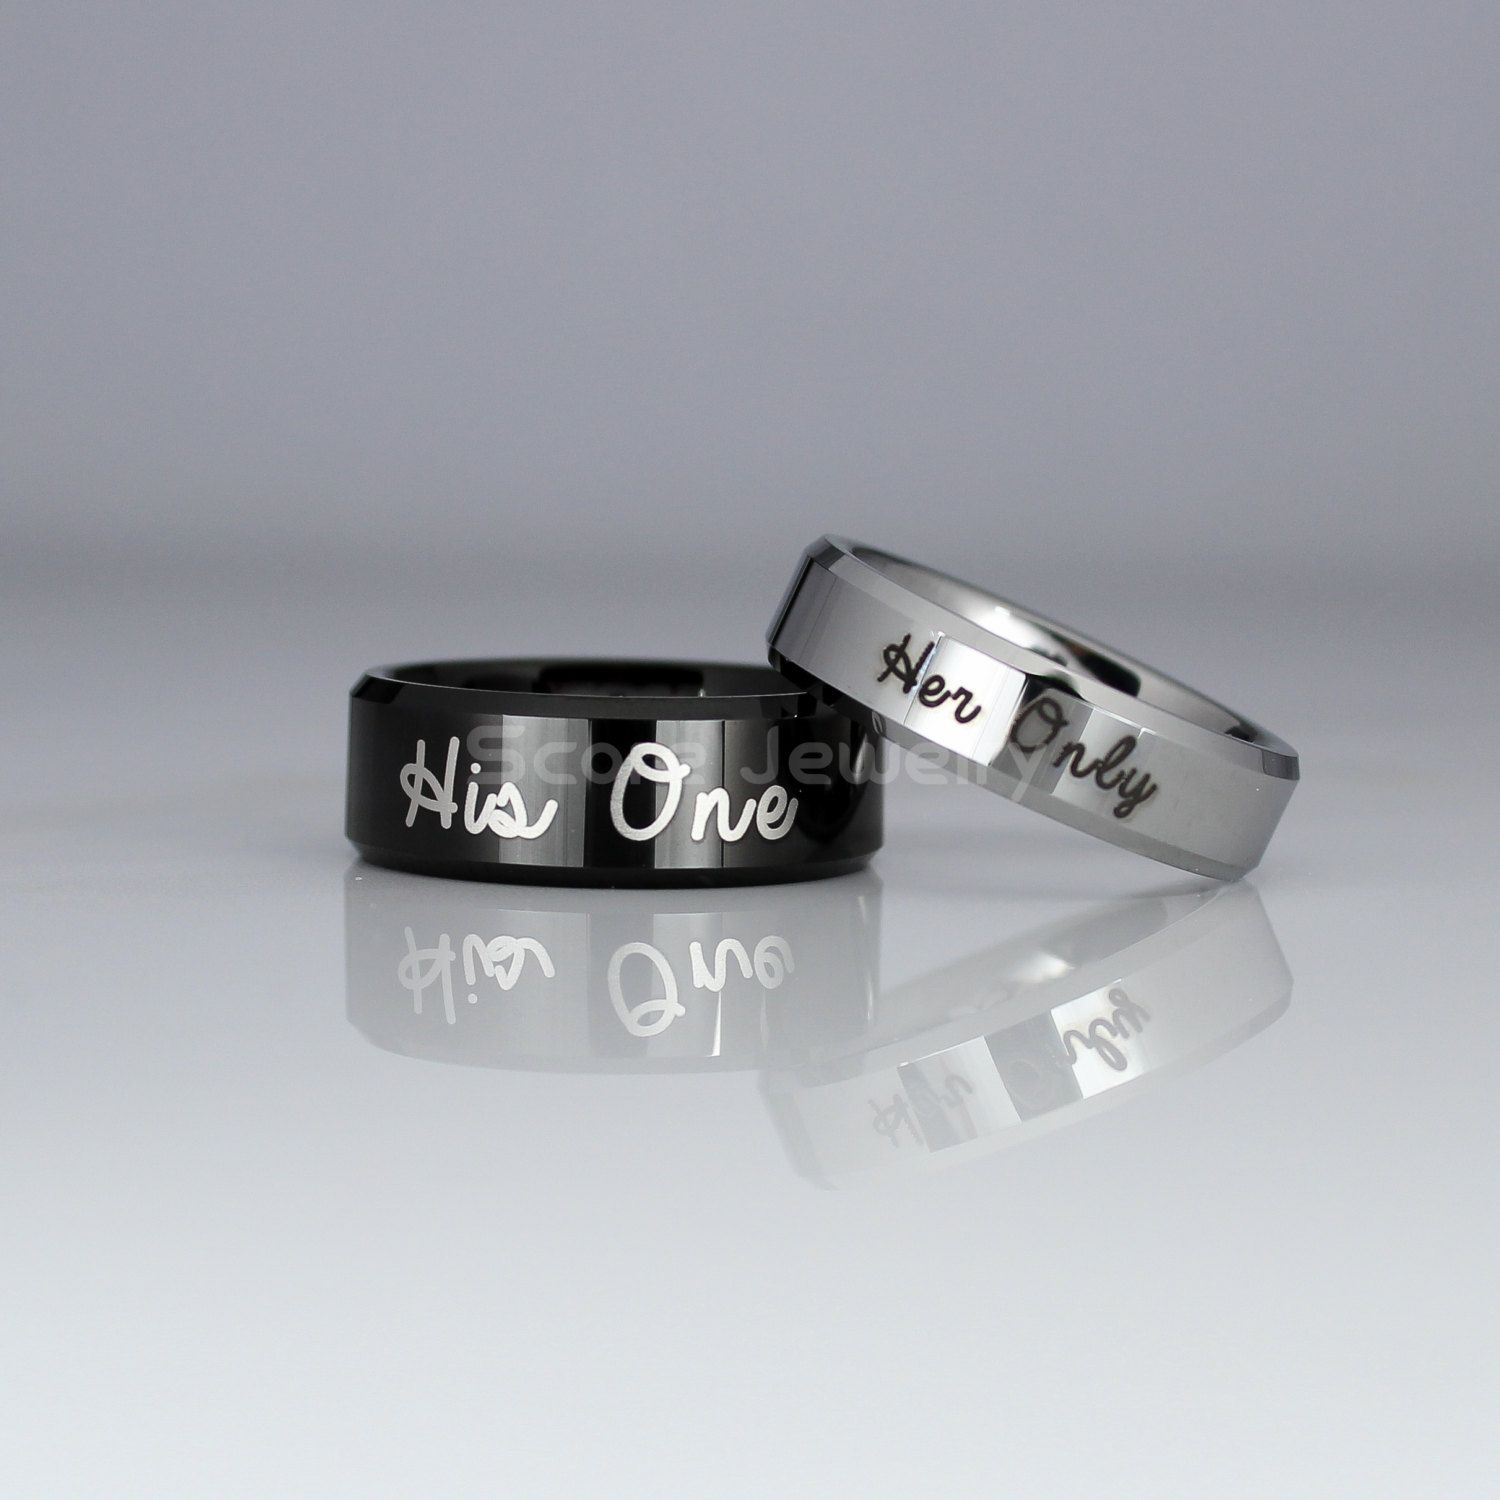 products il ring duck band personal bands damascus fullxfull steel wedding message